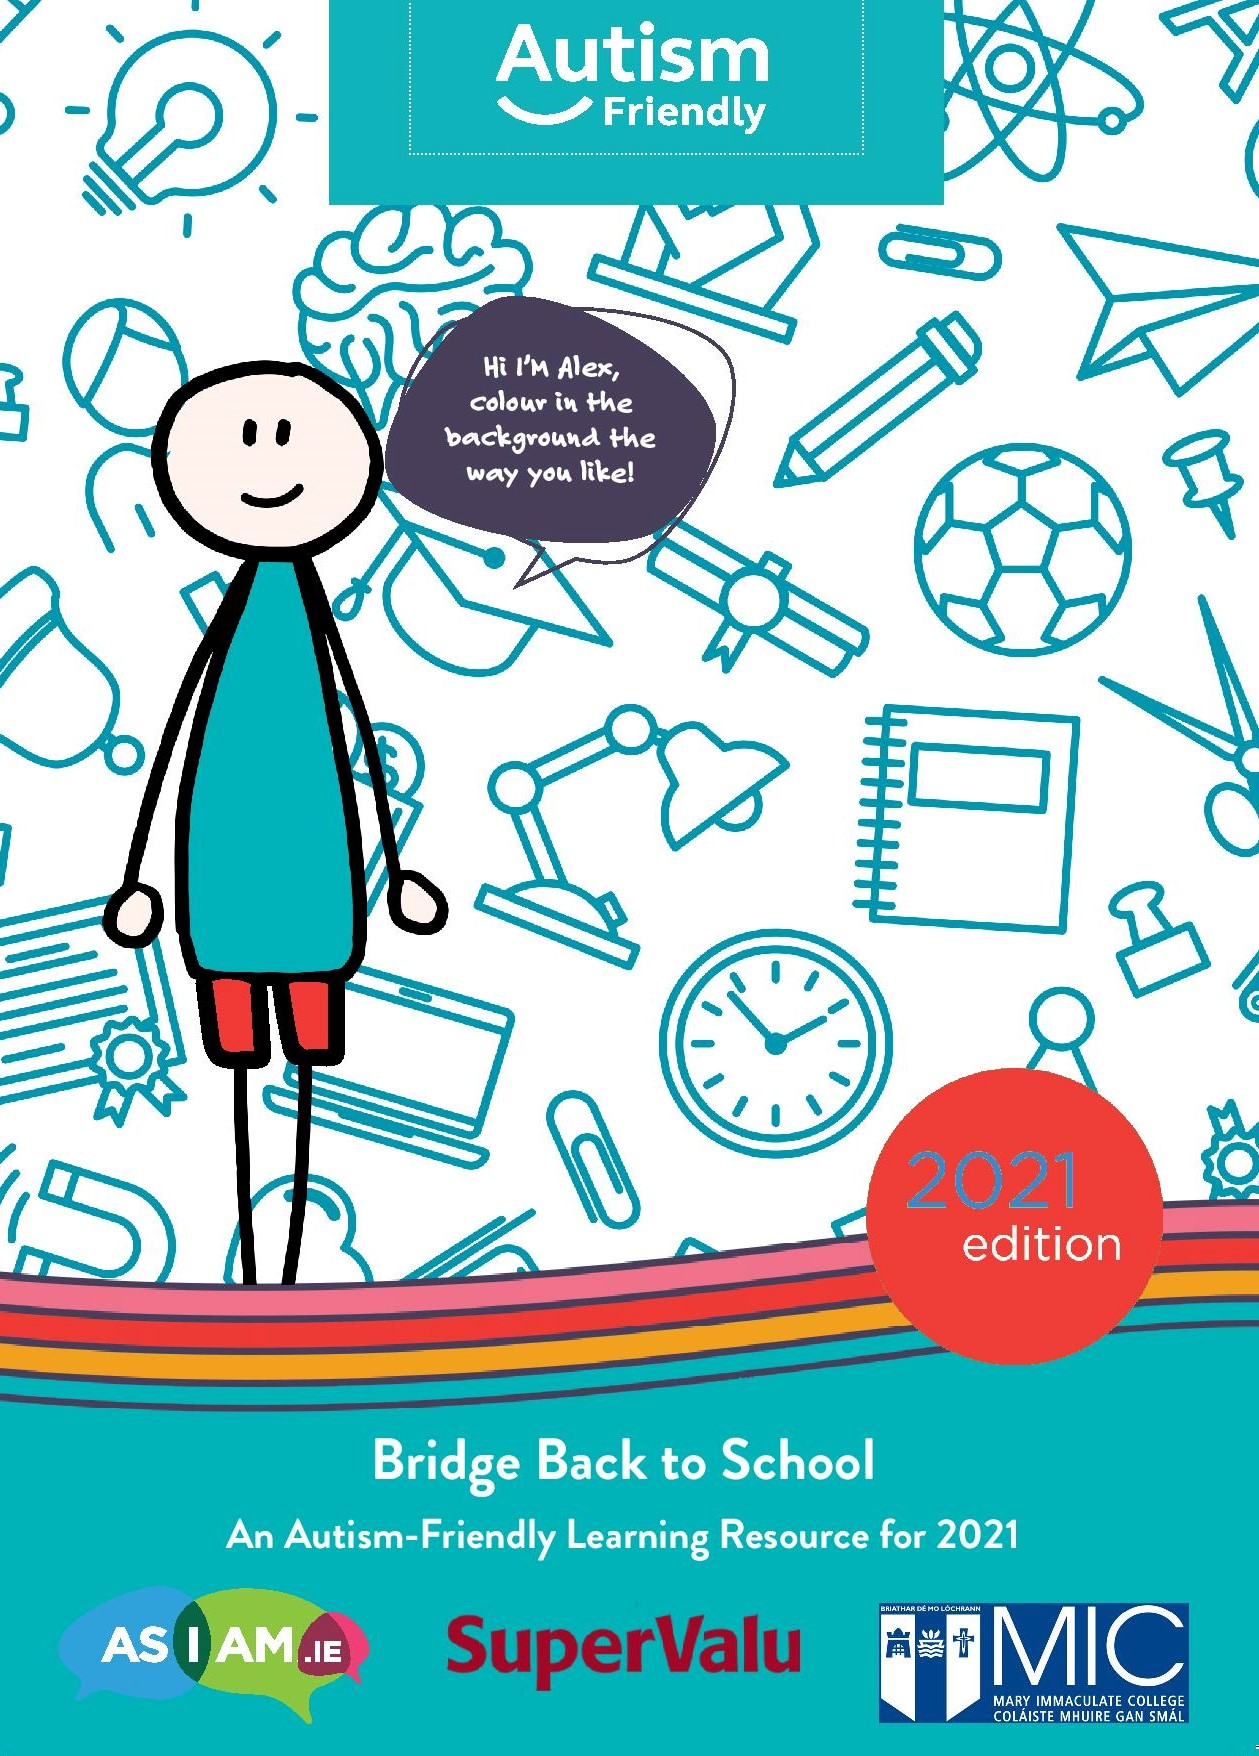 Bridge Back to School